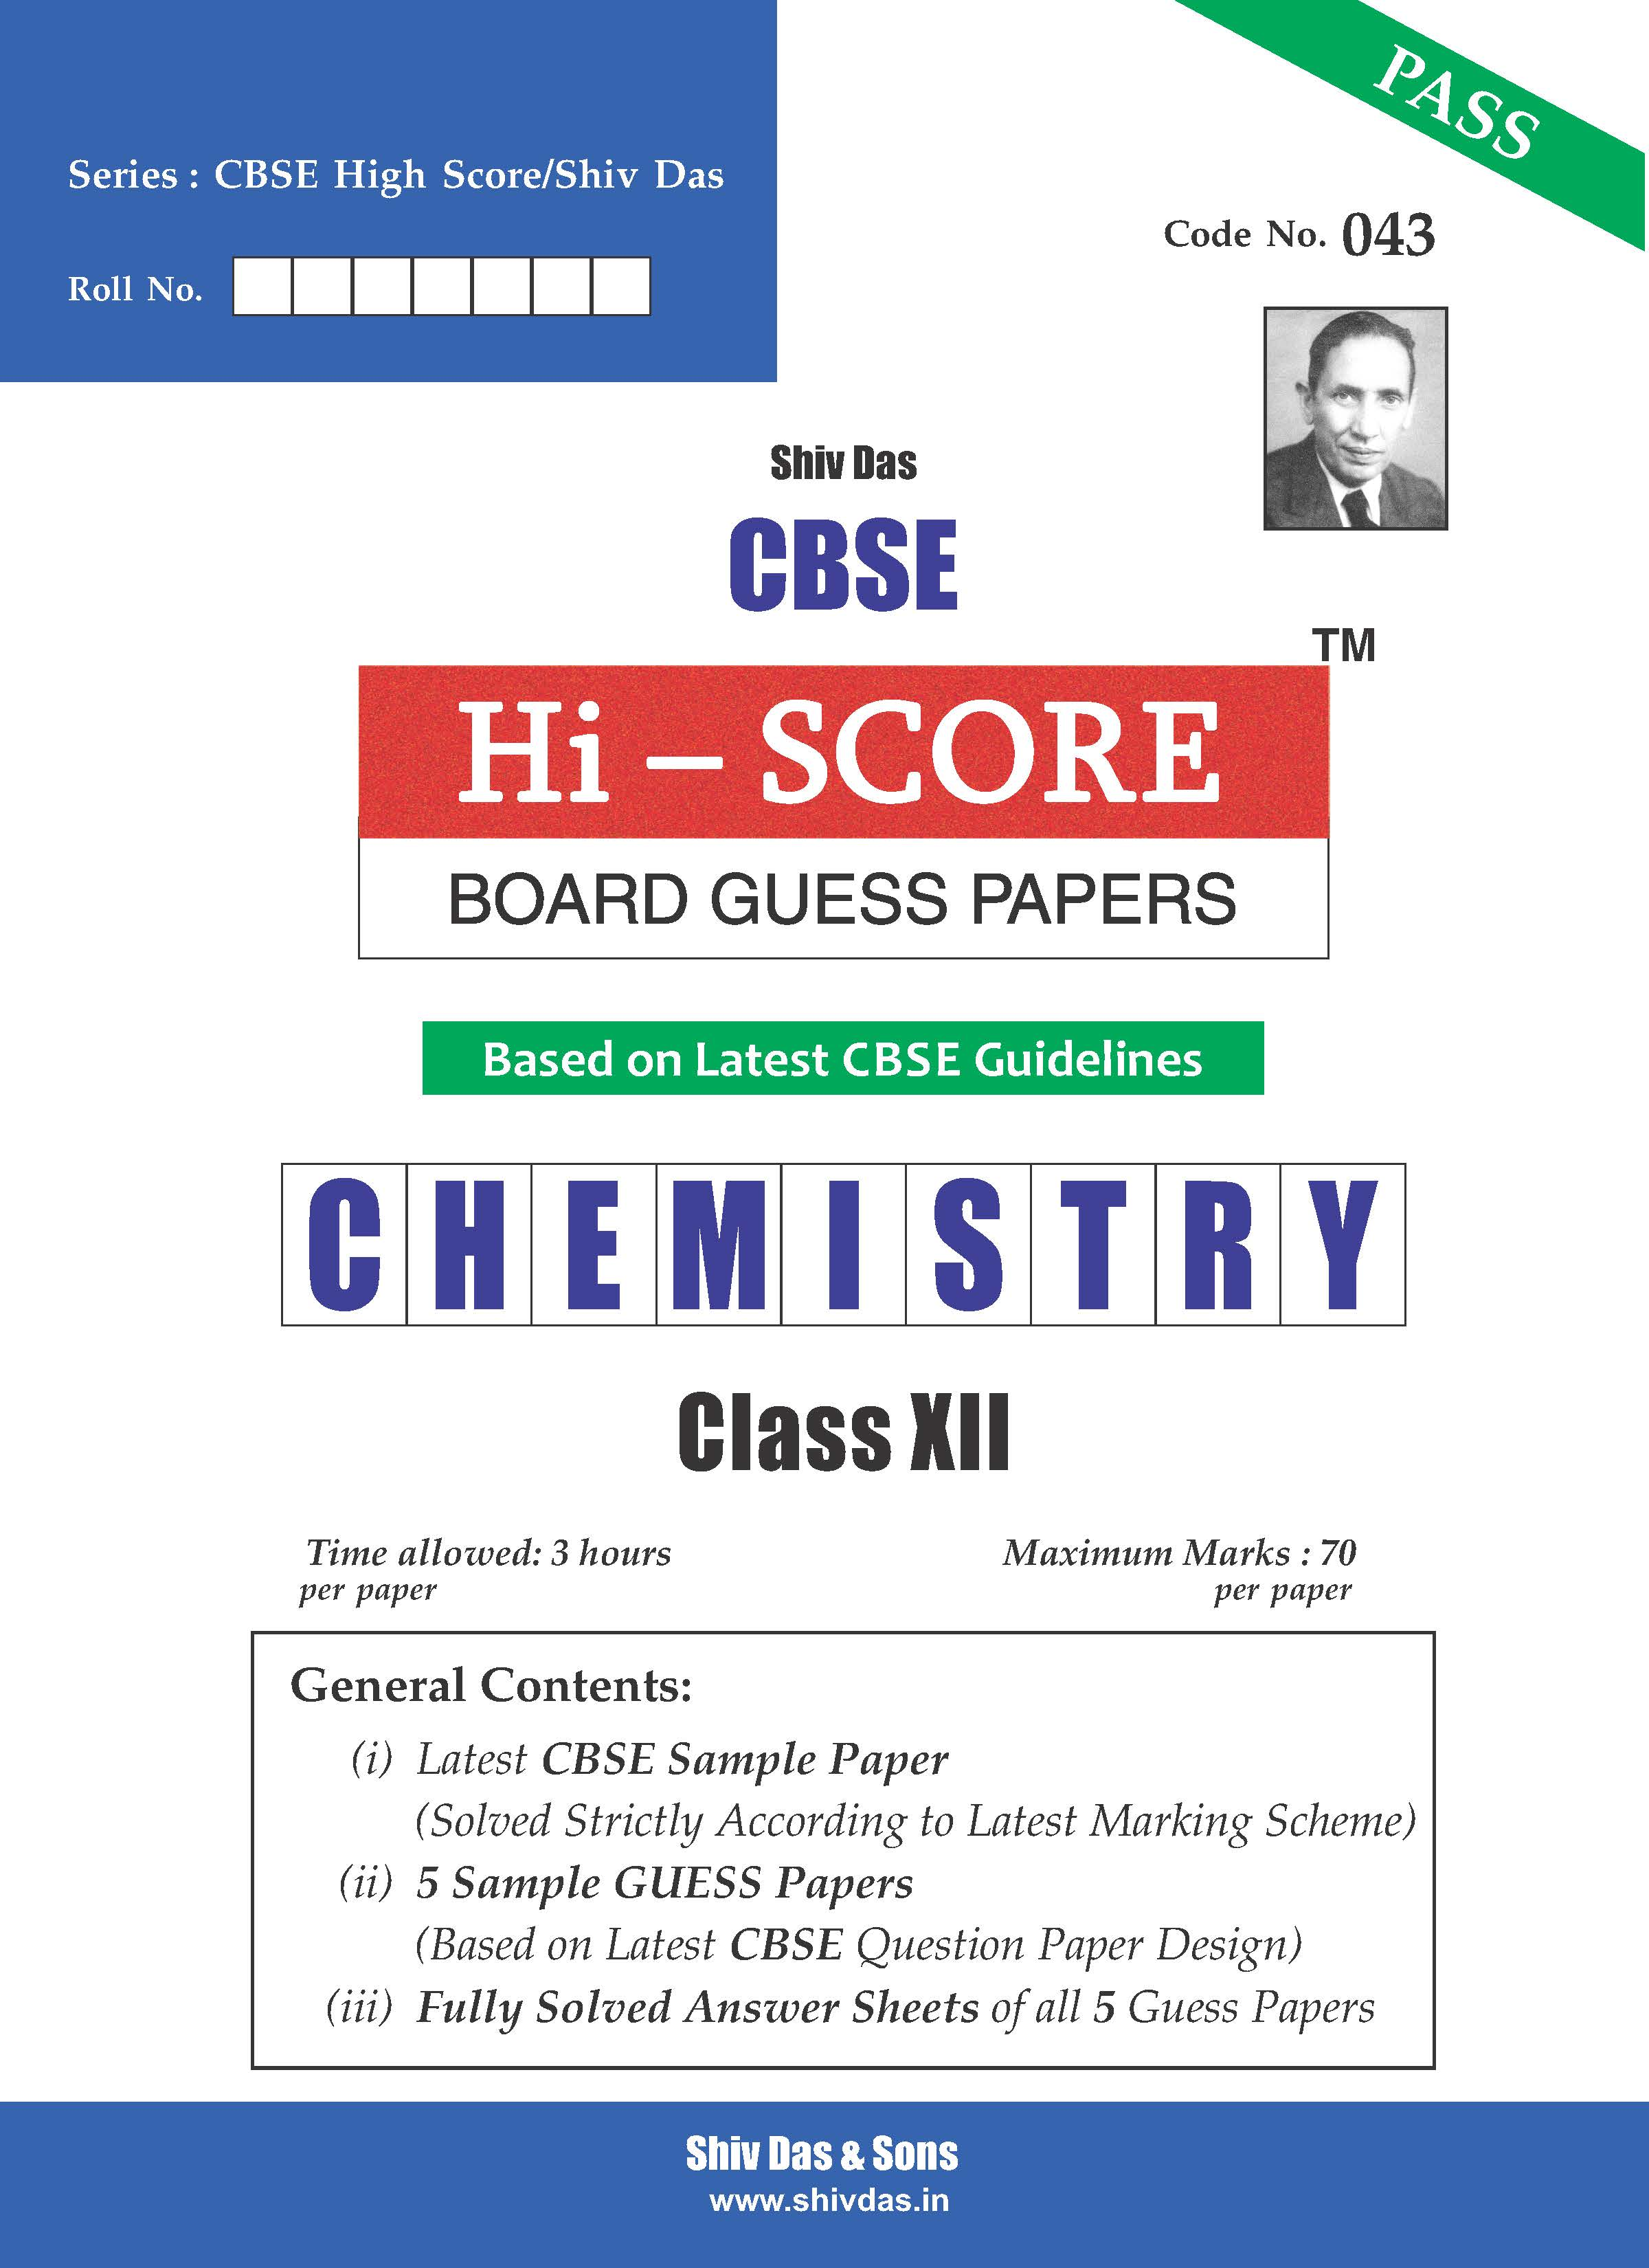 CBSE Hi Score Board Guess Papers for Class 12 Chemistry